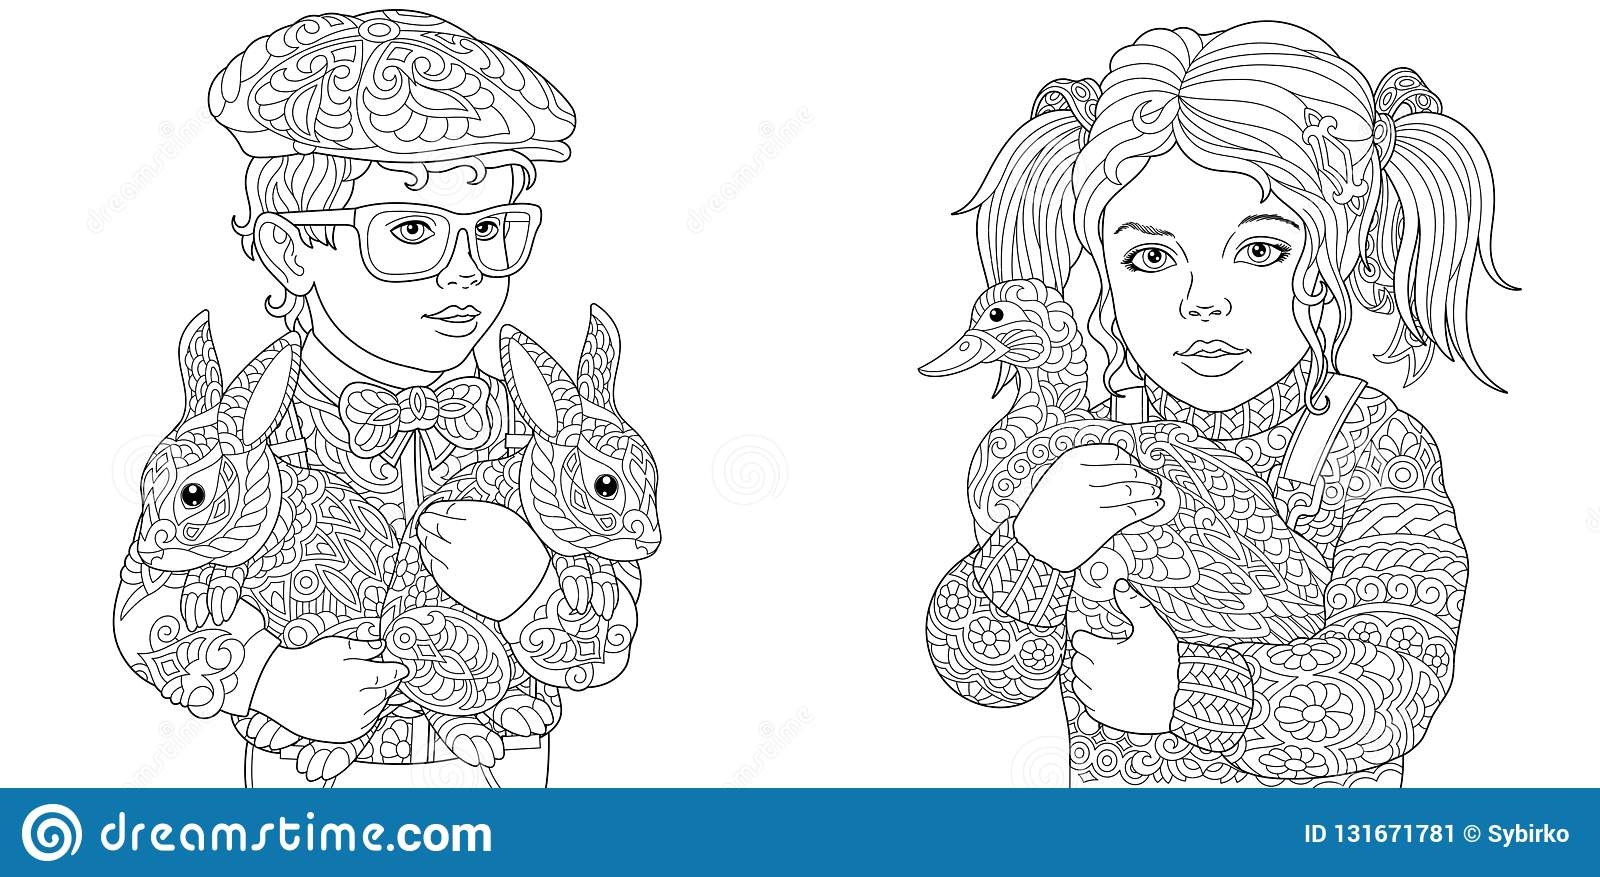 Boy And Girl Coloring Pages Coloring Book For Adults Colouring